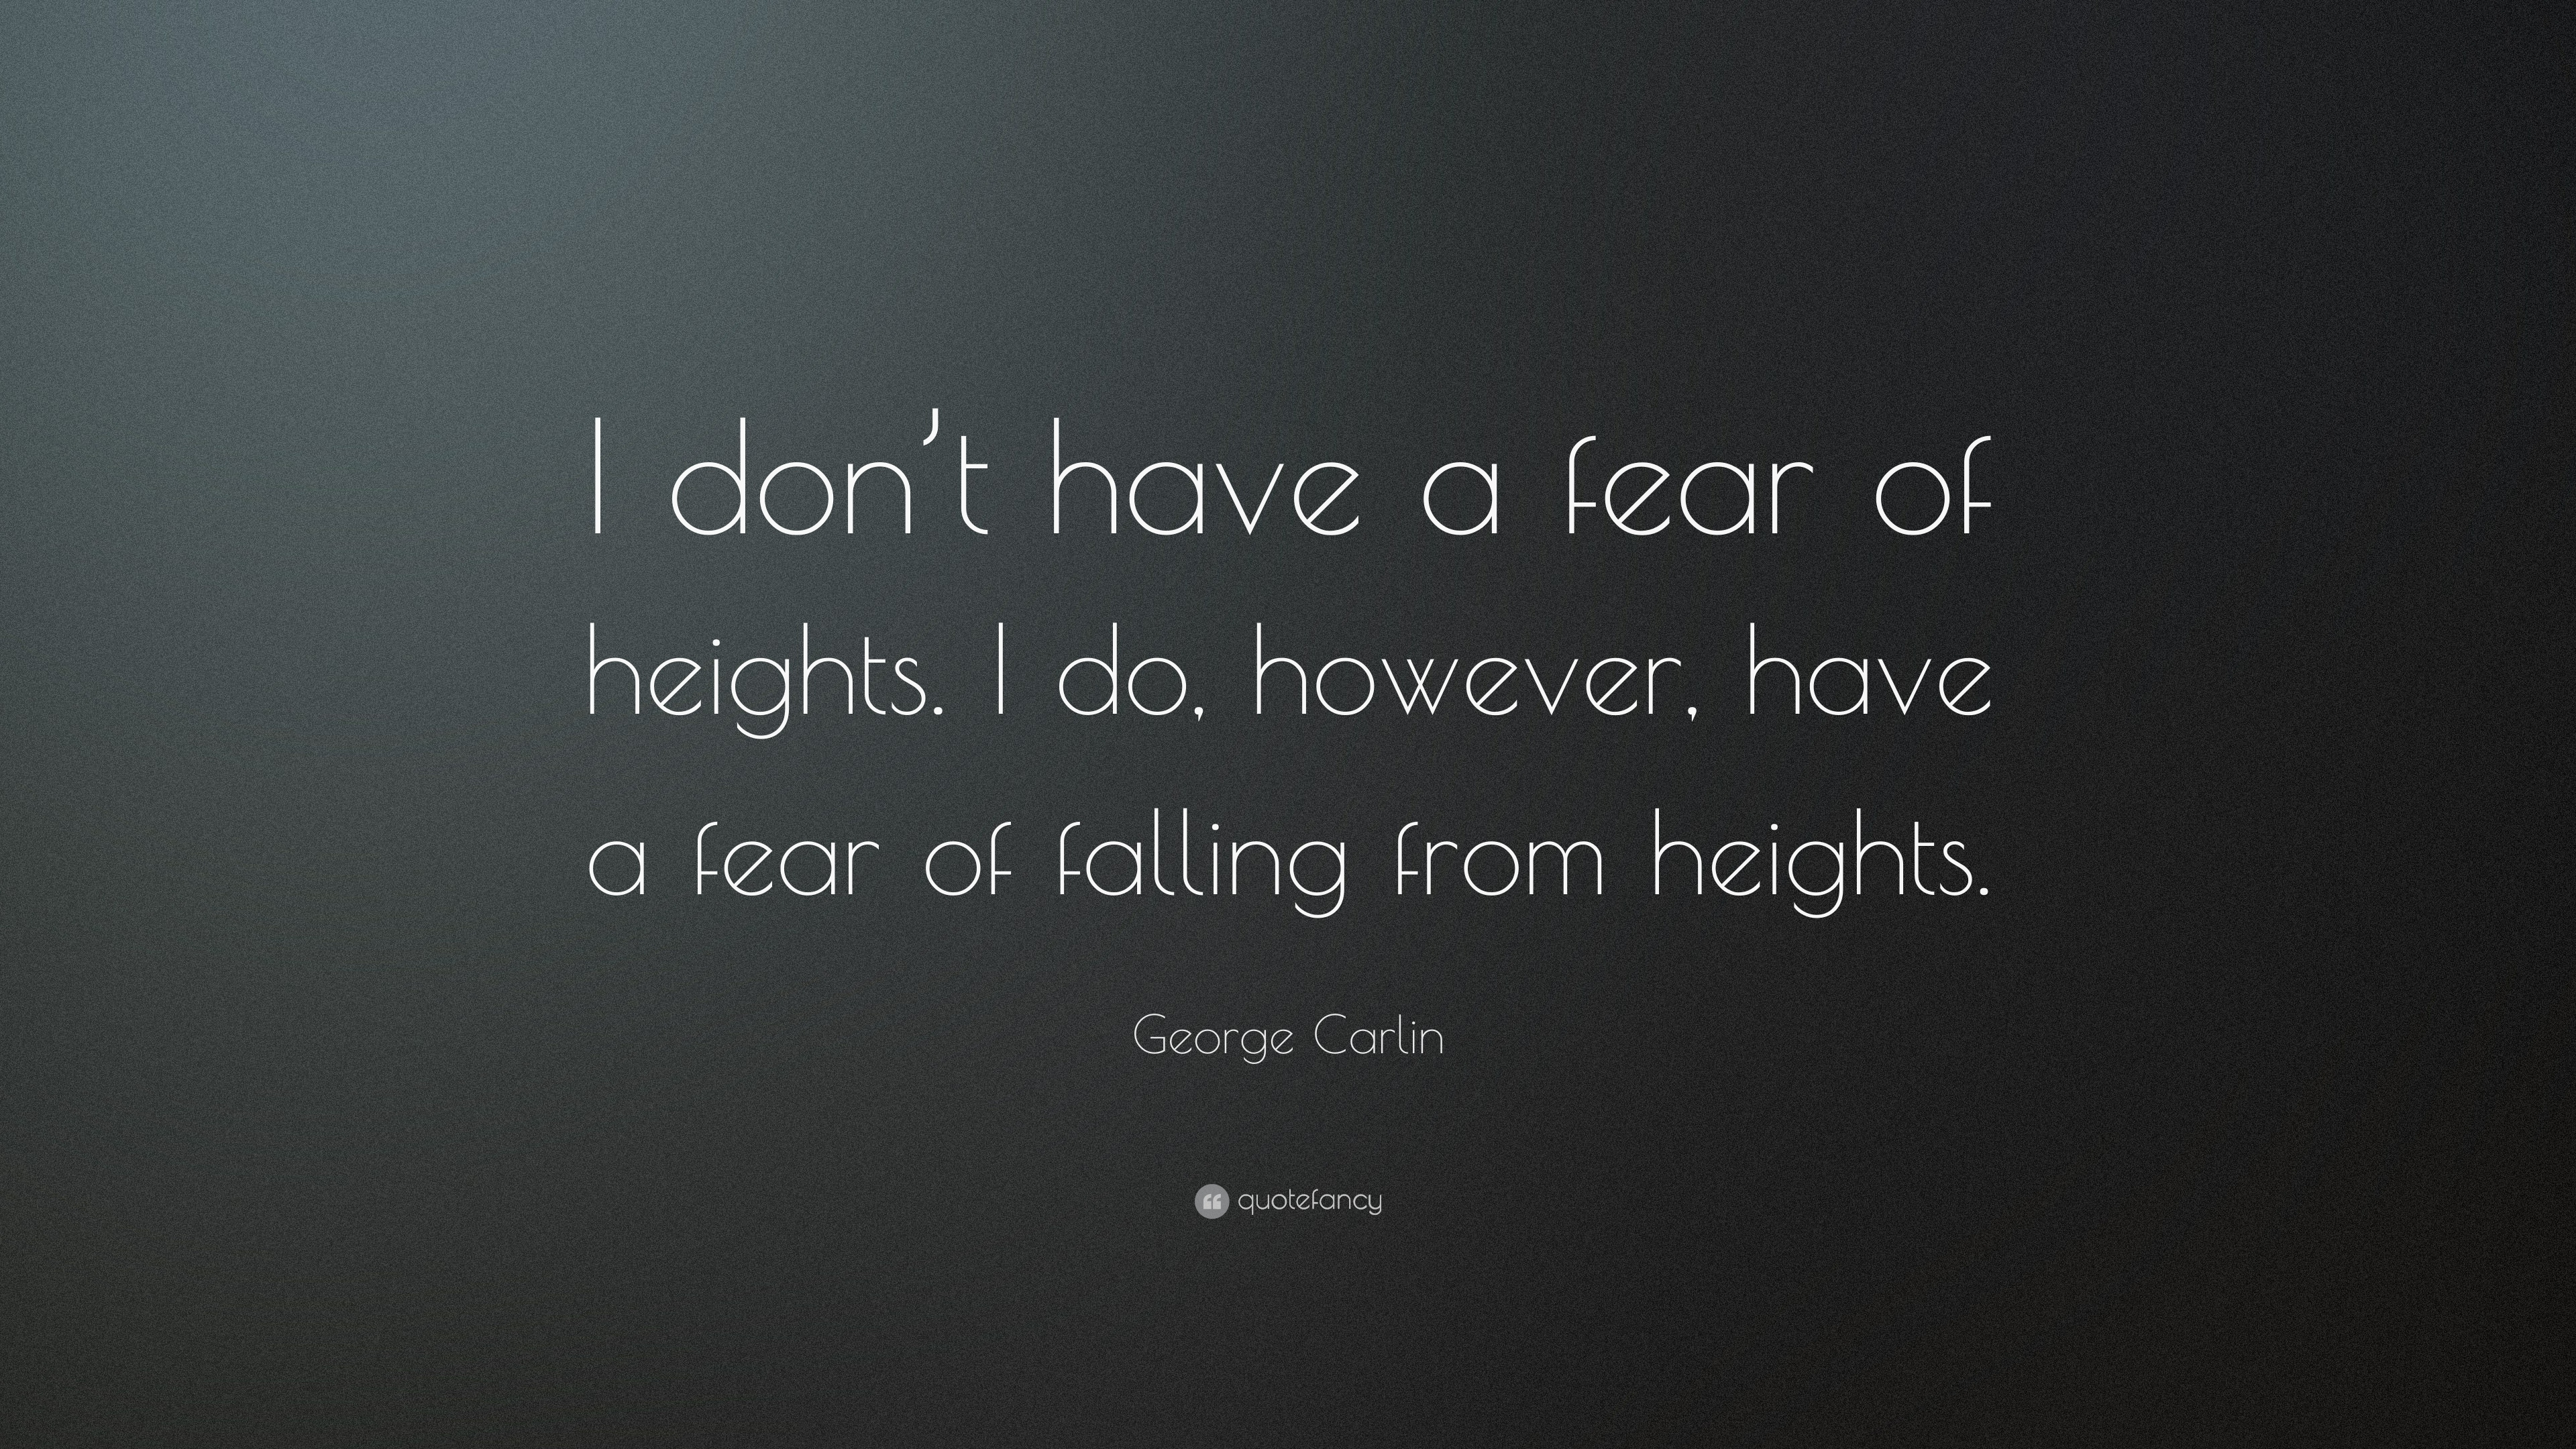 George Carlin Quote: U201cI Donu0027t Have A Fear Of Heights. I